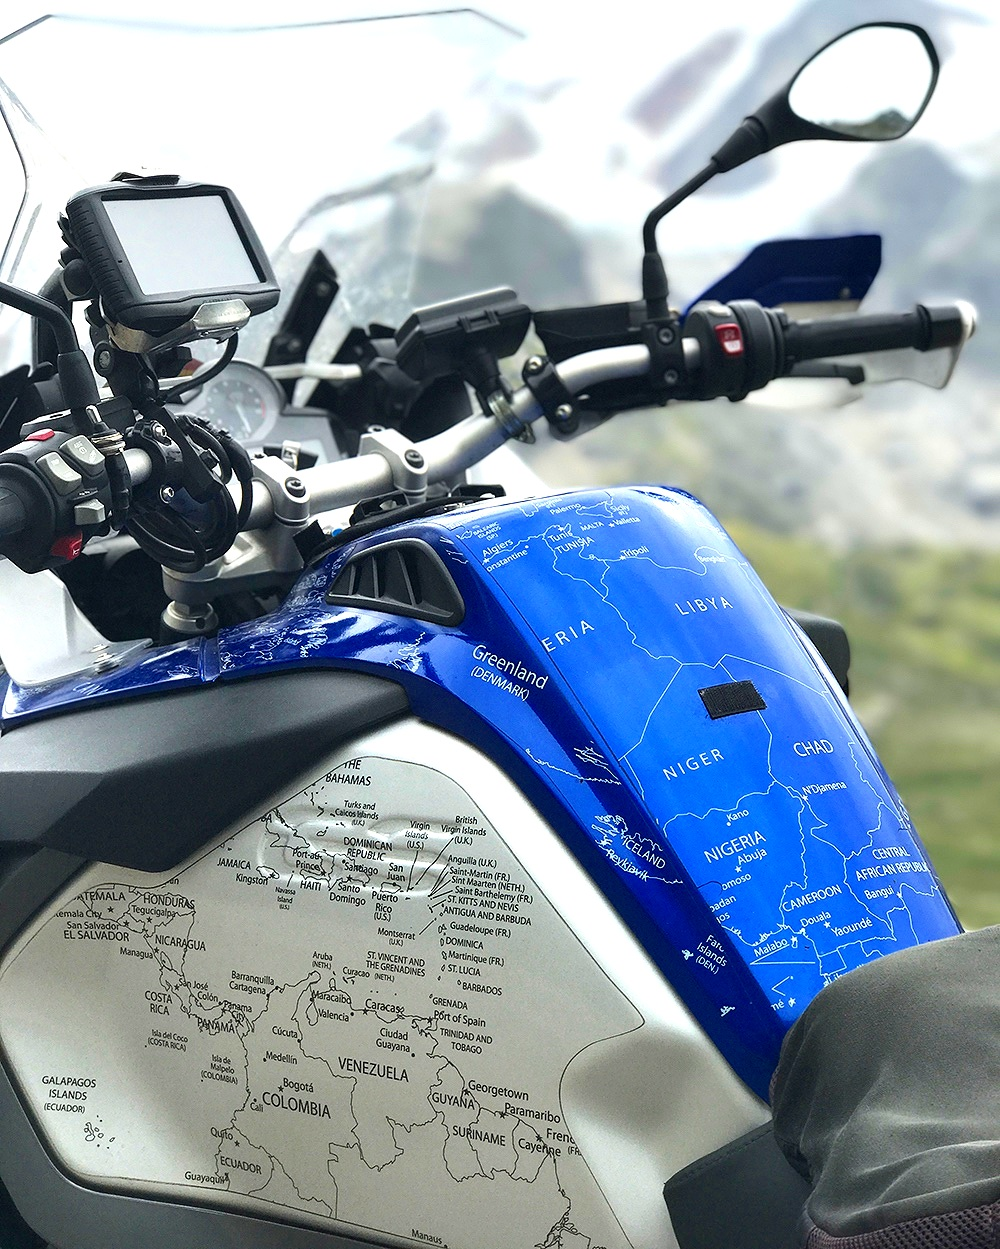 BMW R1200 1250 GS LC ADVENTURE 2014 Onwards BMW World Stickers and Decals Blue With White Map Side Tanks On Black